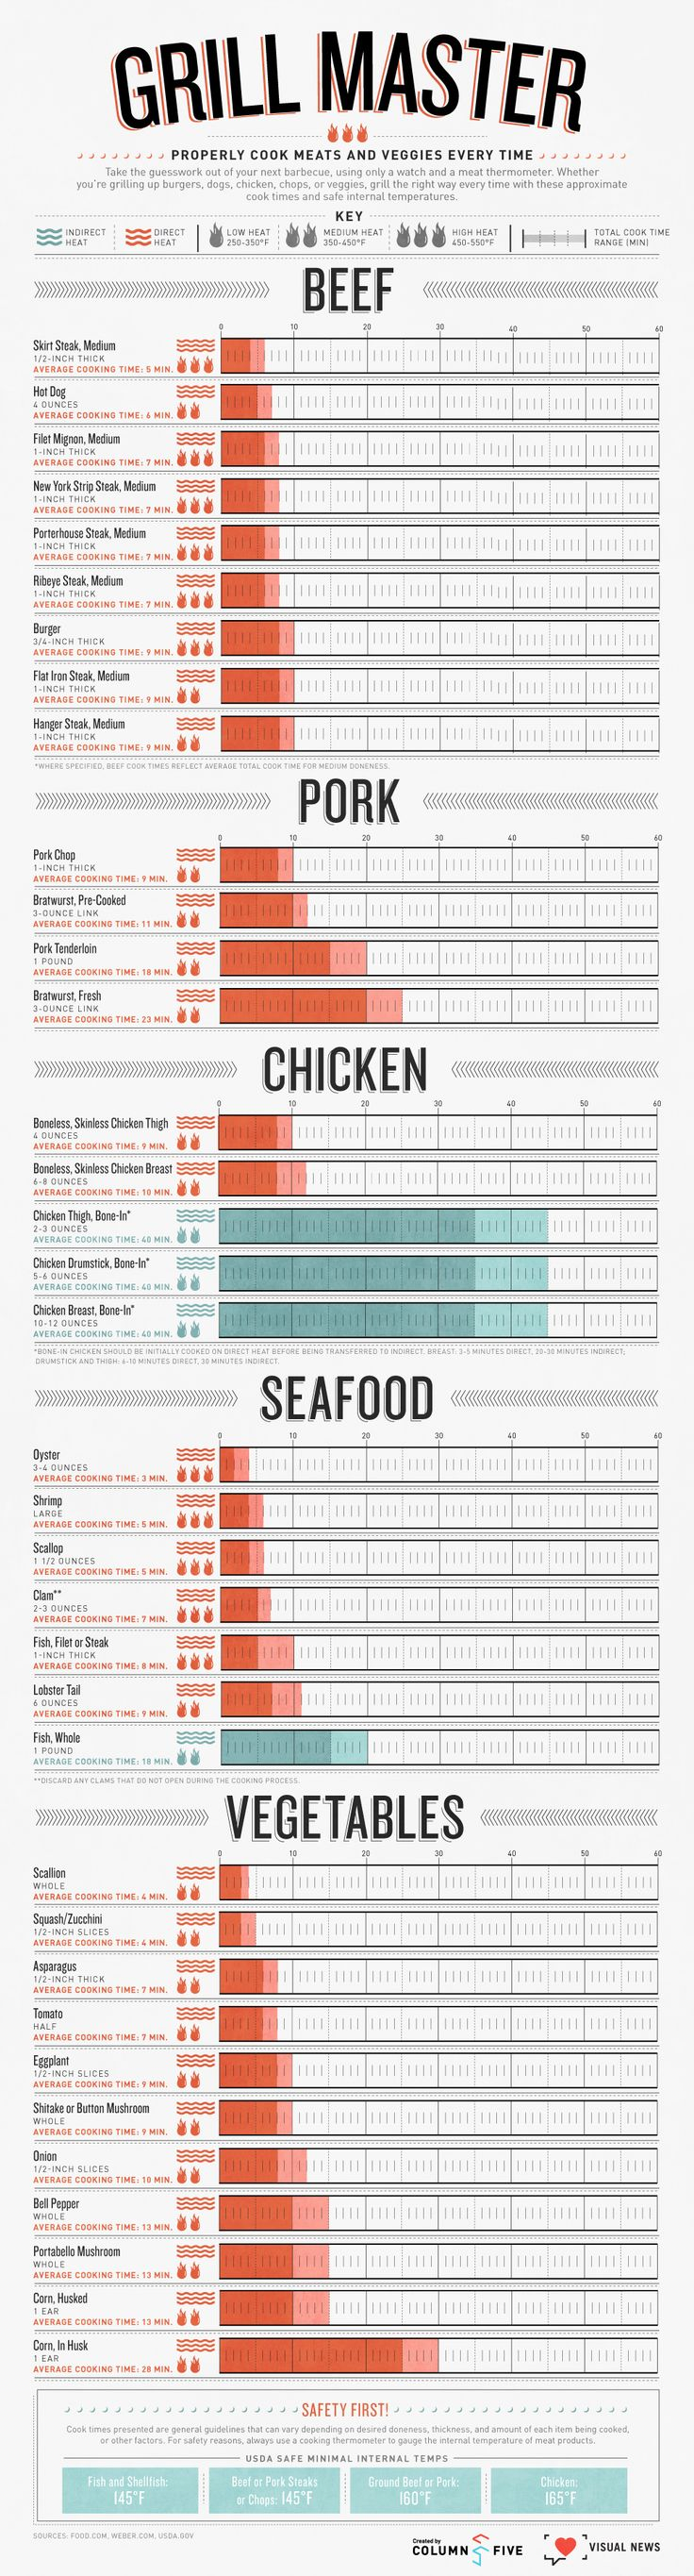 Grill Master Cheat Sheet:  at what temperature and how long to grill different cuts of meat!